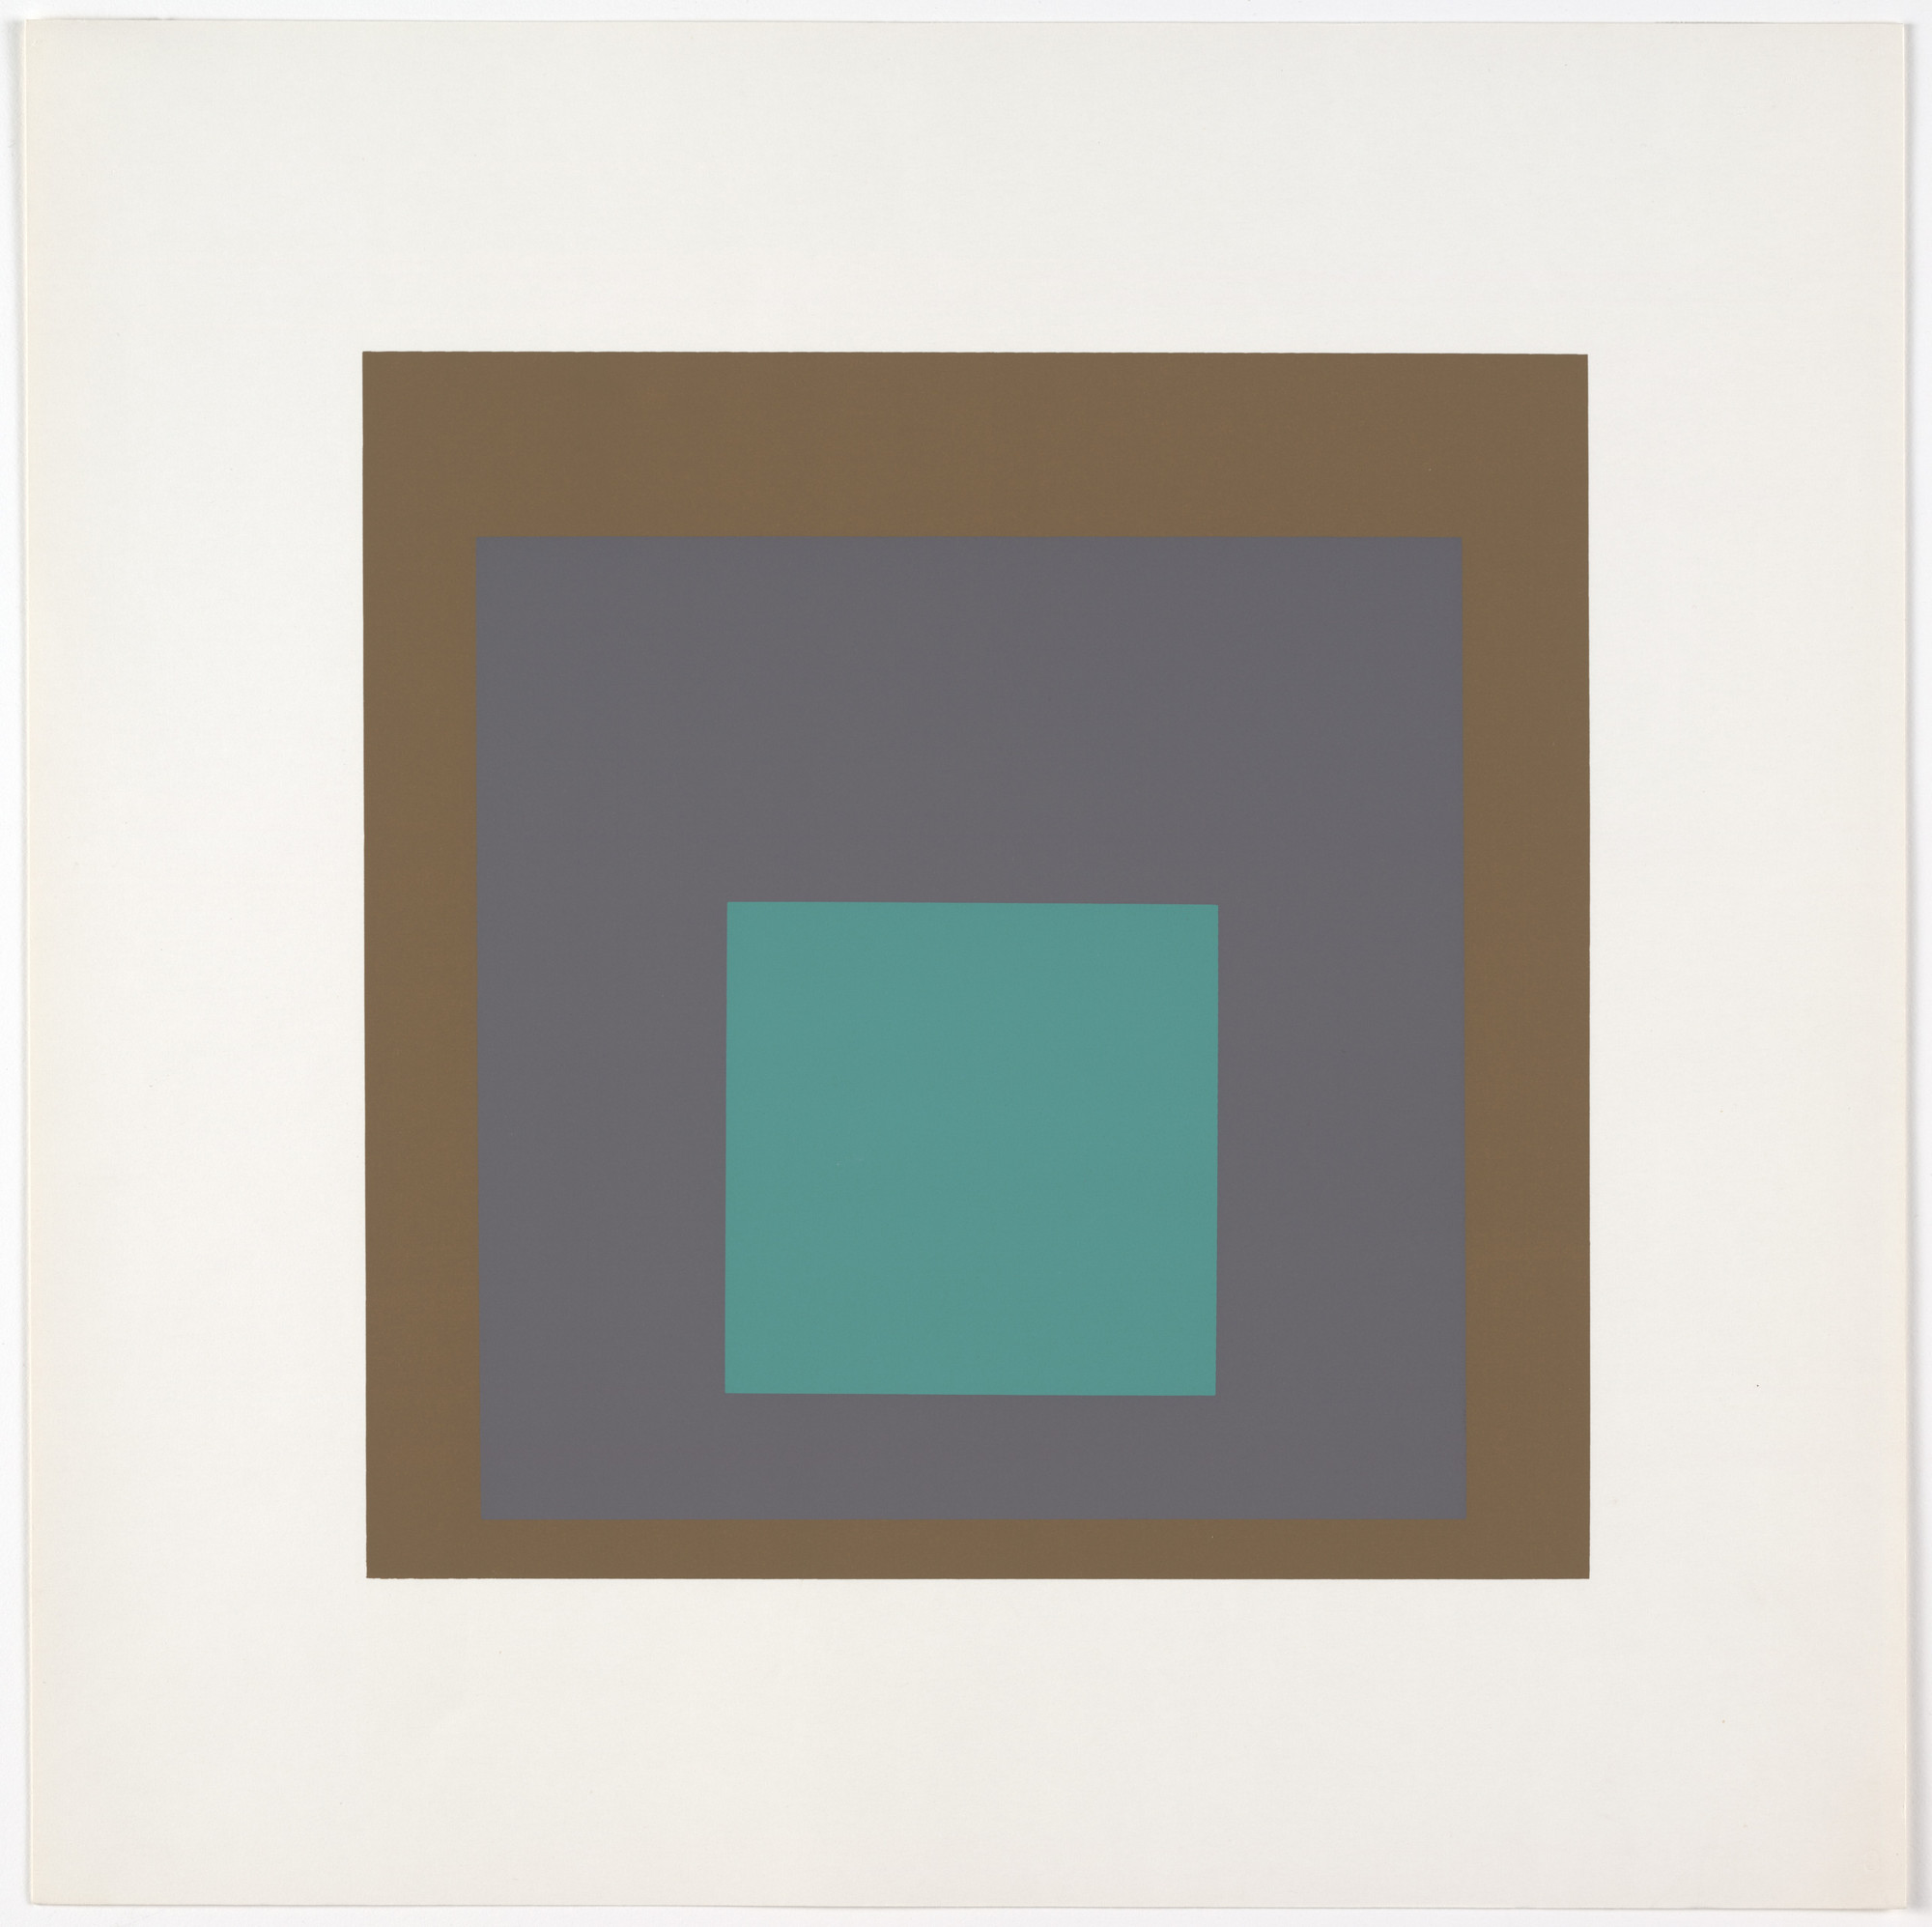 Josef Albers. Aura from Homage to the Square: Ten Works by Josef Albers. 1962